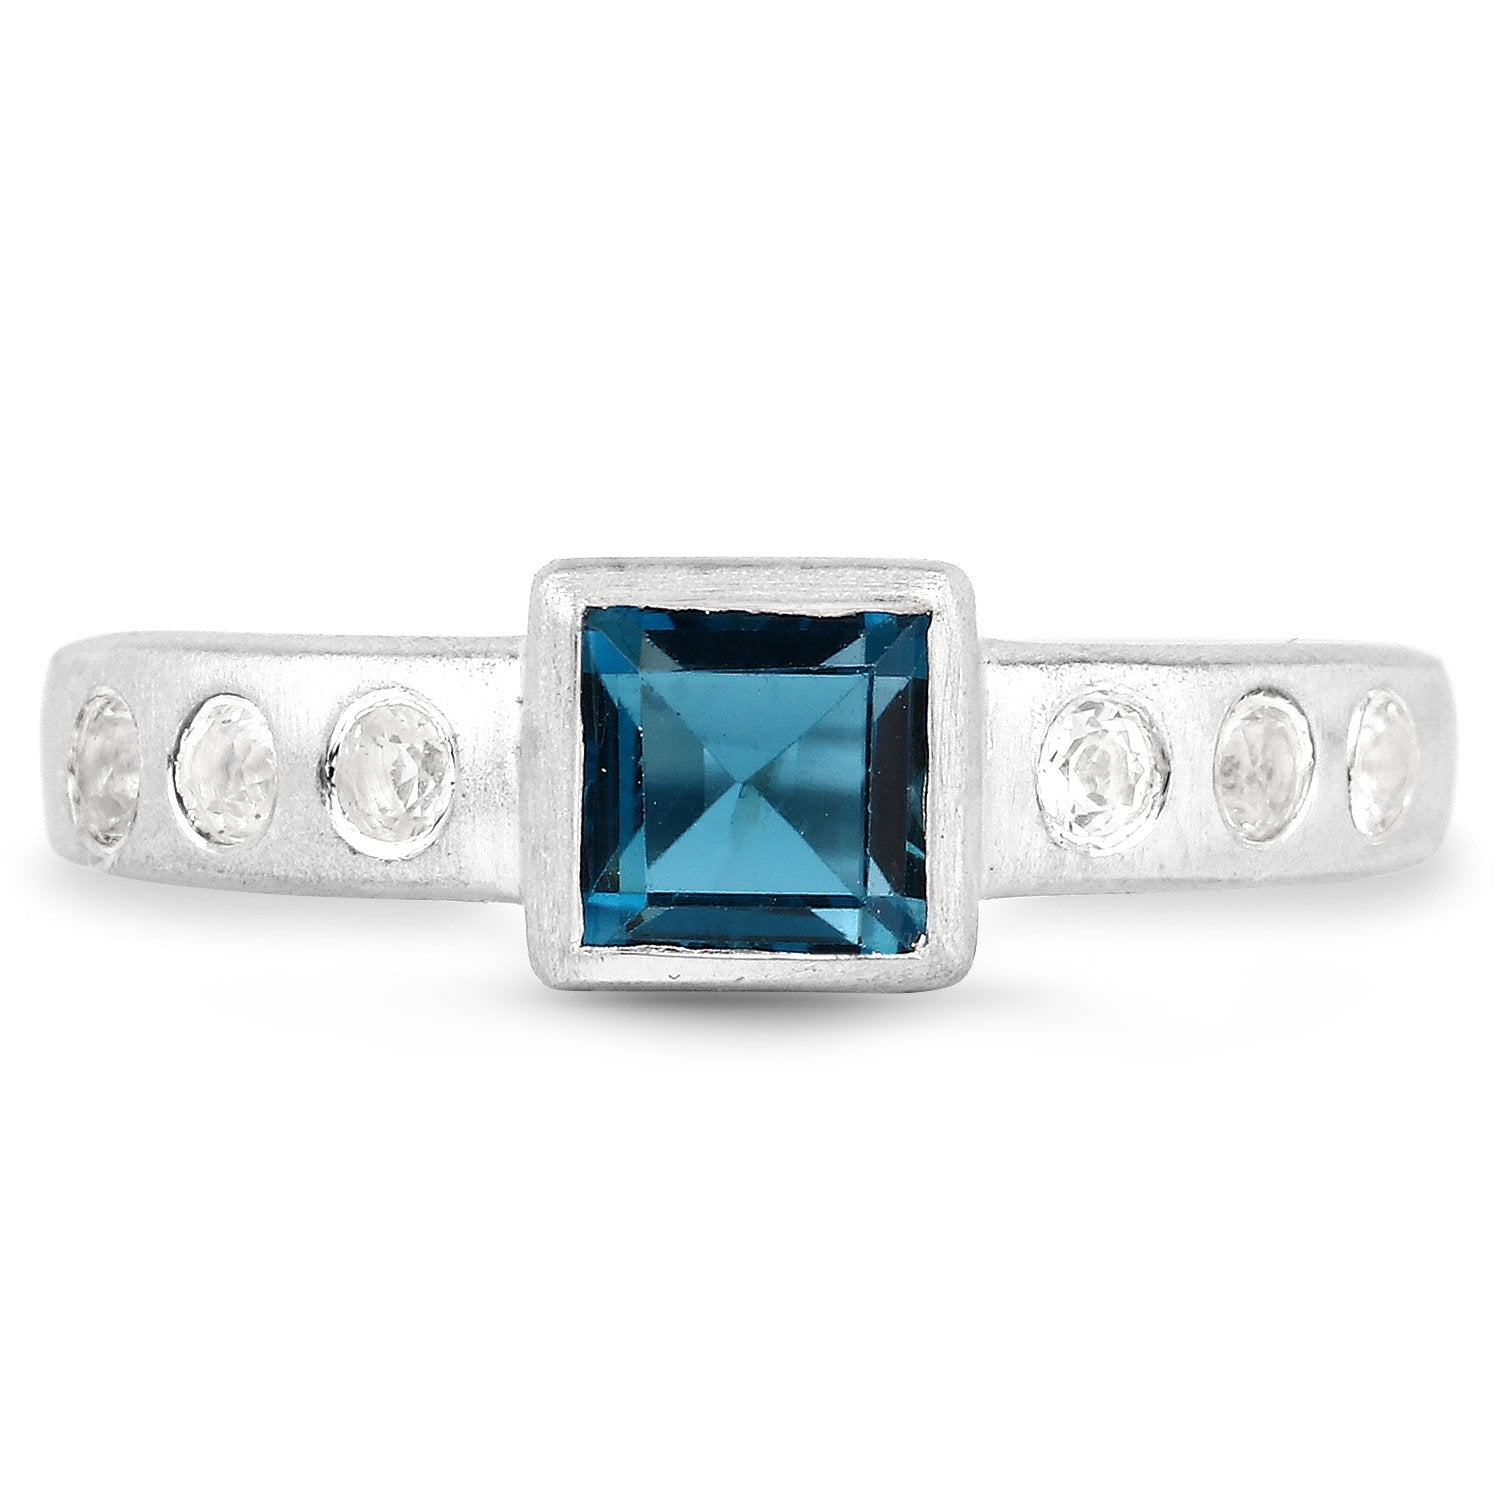 LoveHuang 0.94 Carats Genuine London Blue Topaz and White Topaz Matte Finish Ring Solid .925 Sterling Silver With Rhodium Plating